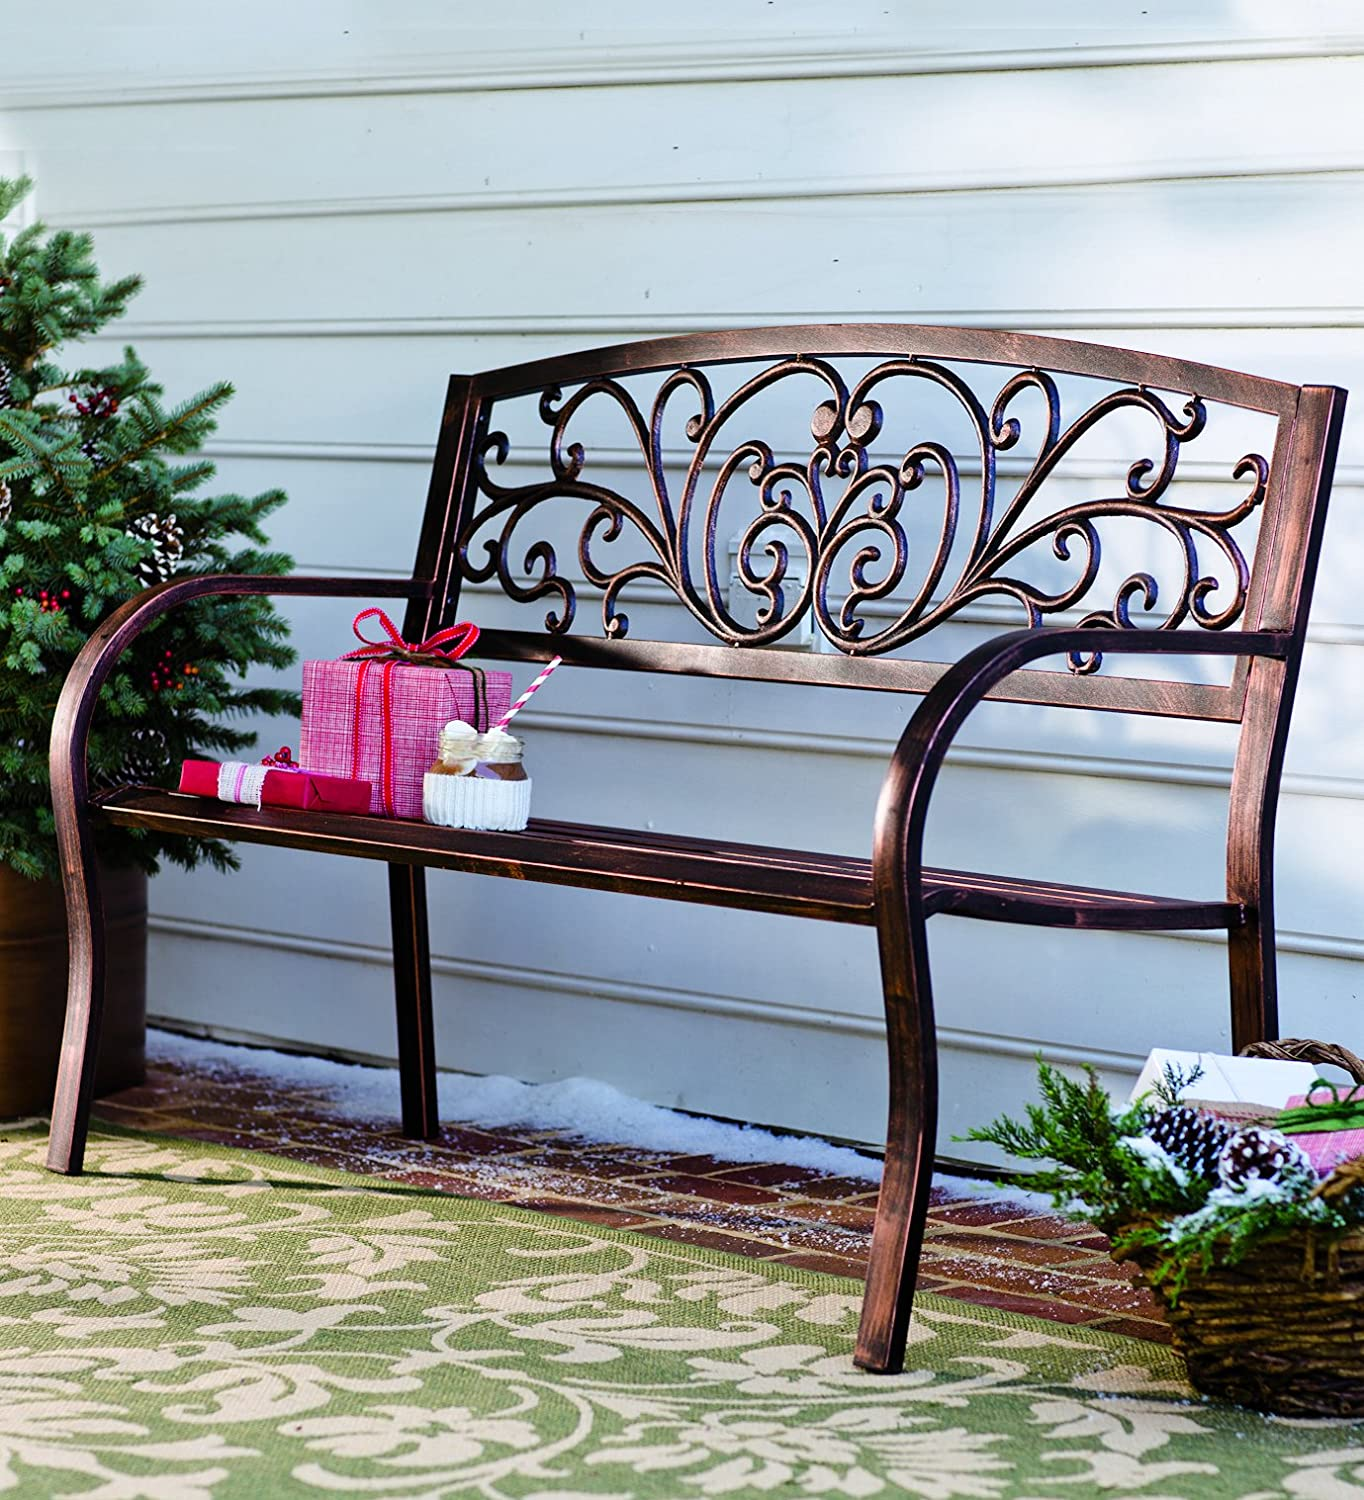 Amazon.com : Plow U0026 Hearth Blooming Patio Garden Bench Park Yard Outdoor  Furniture, Iron Metal Frame, Elegant Bronze Finish, Sturdy Durable  Construction, ... Part 21